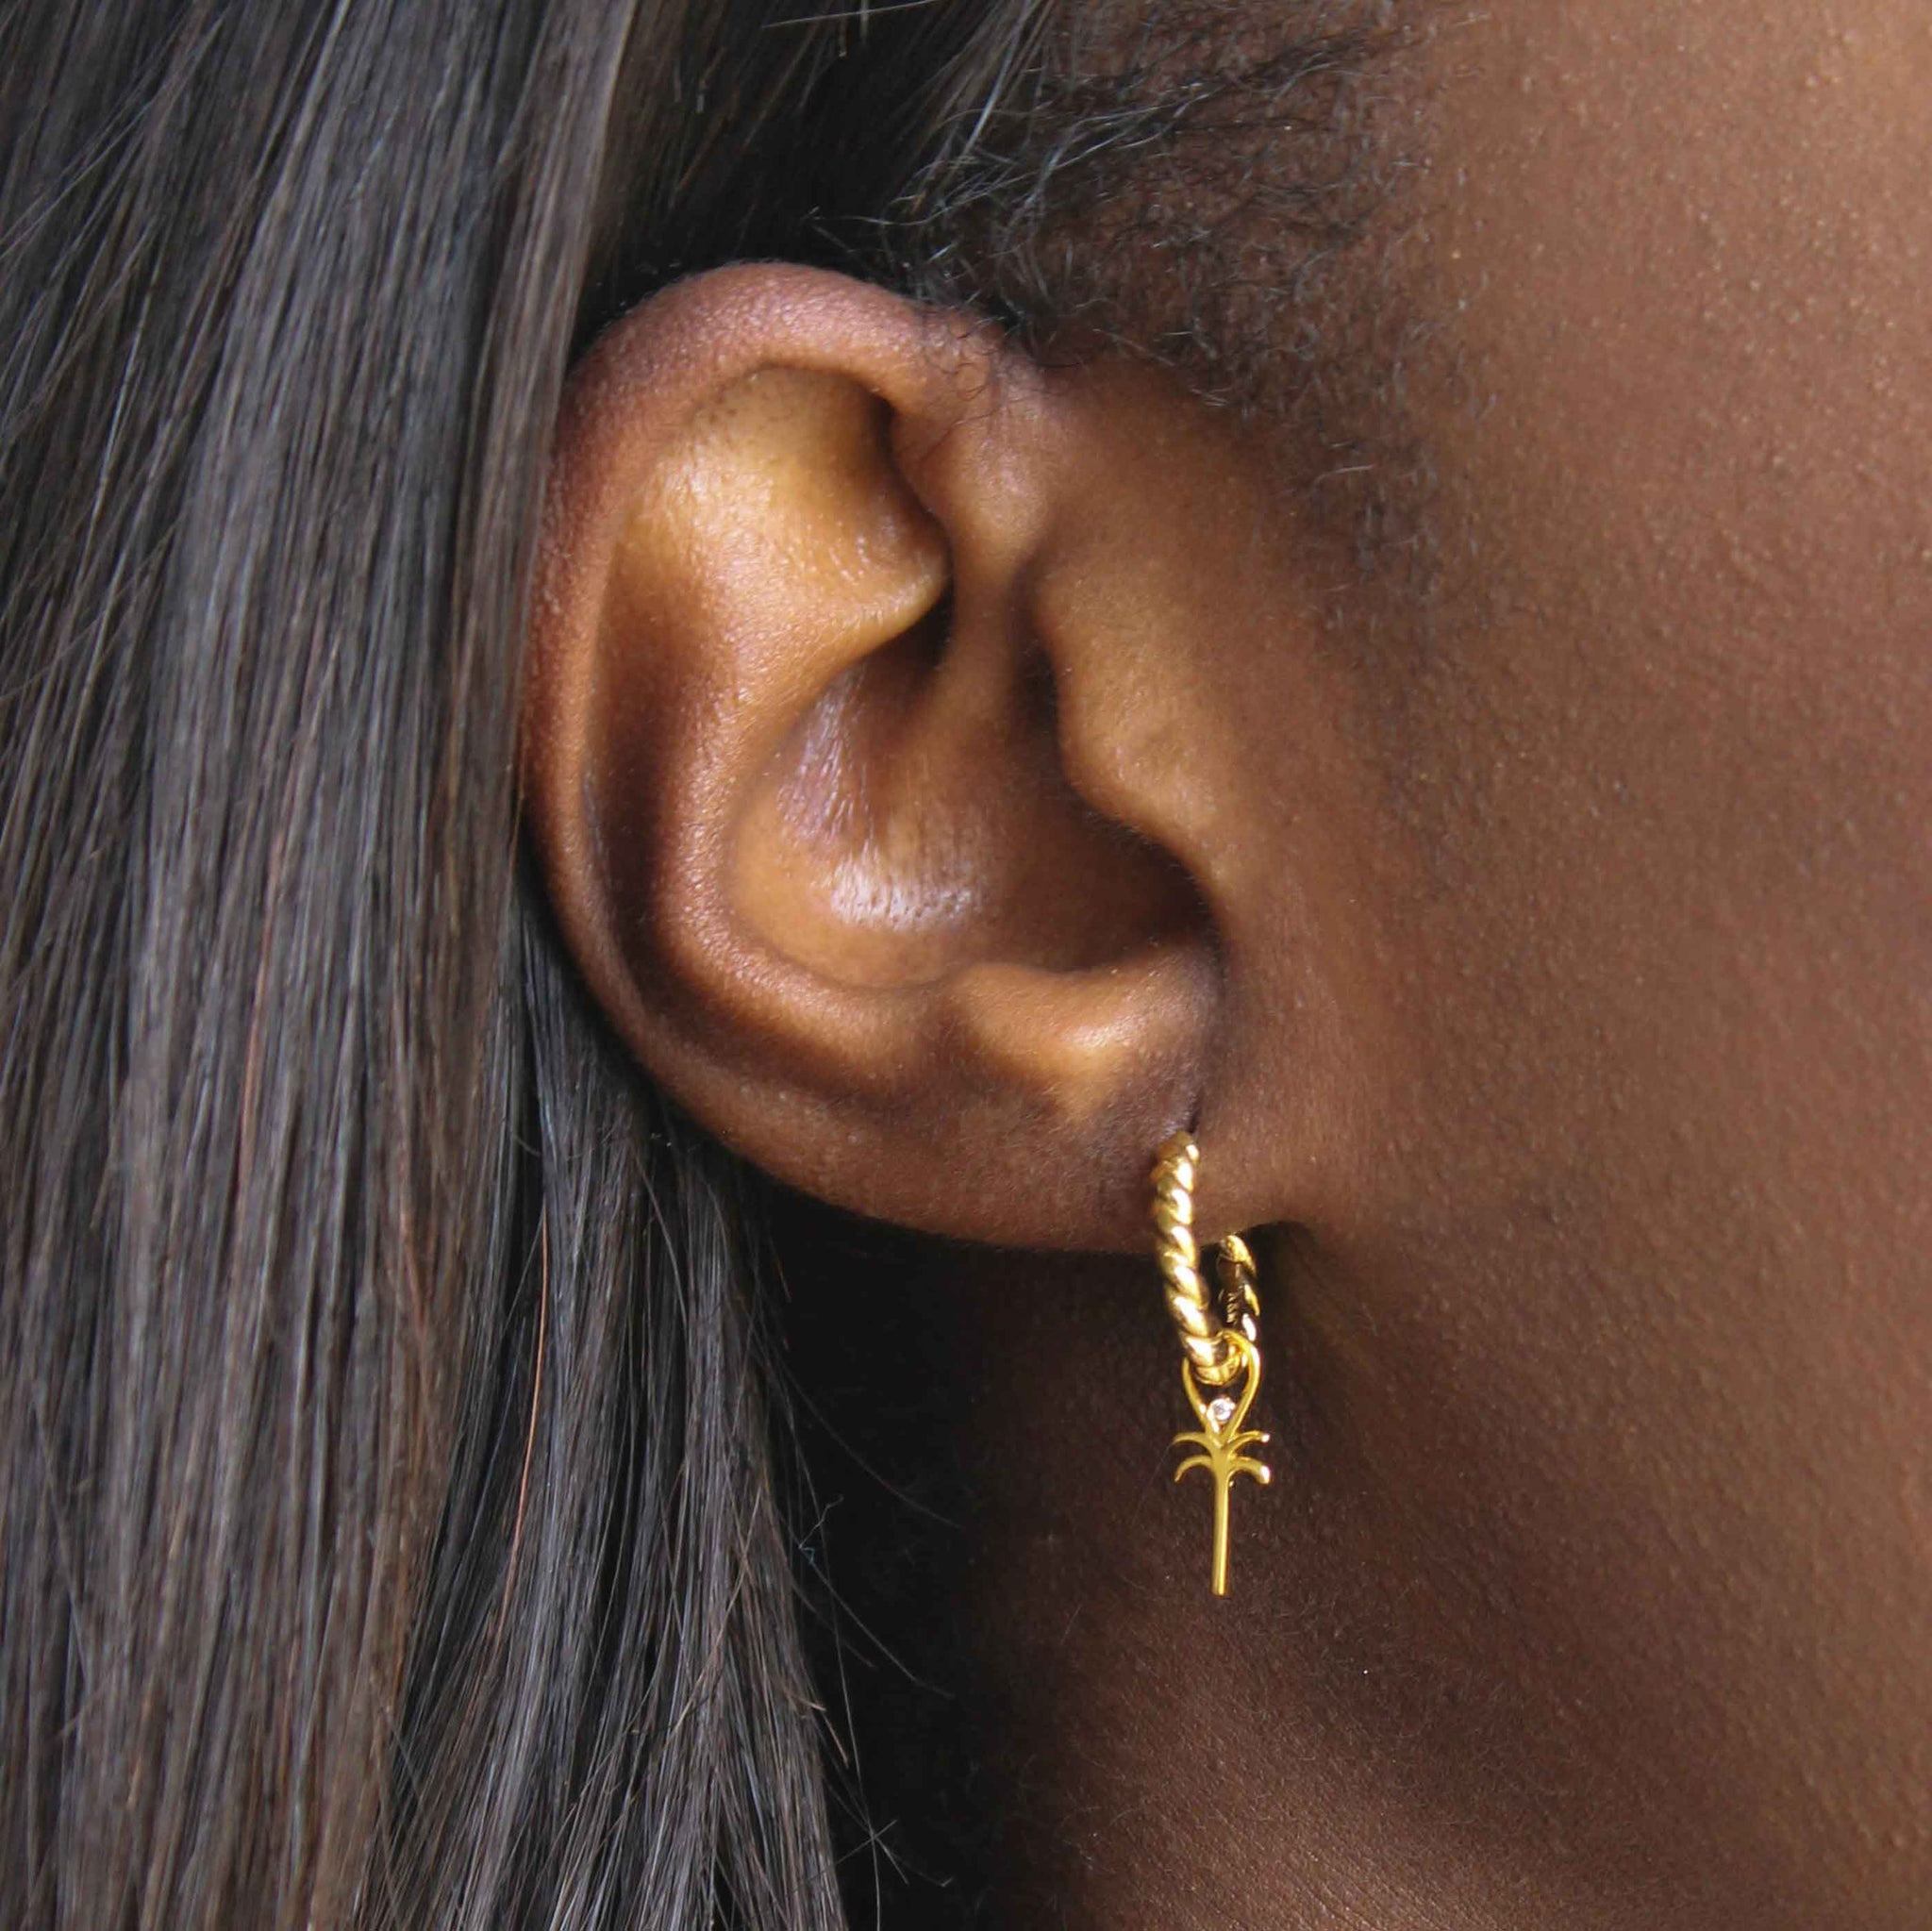 Palm Tree Earring Charm in Gold worn on rope base hoop